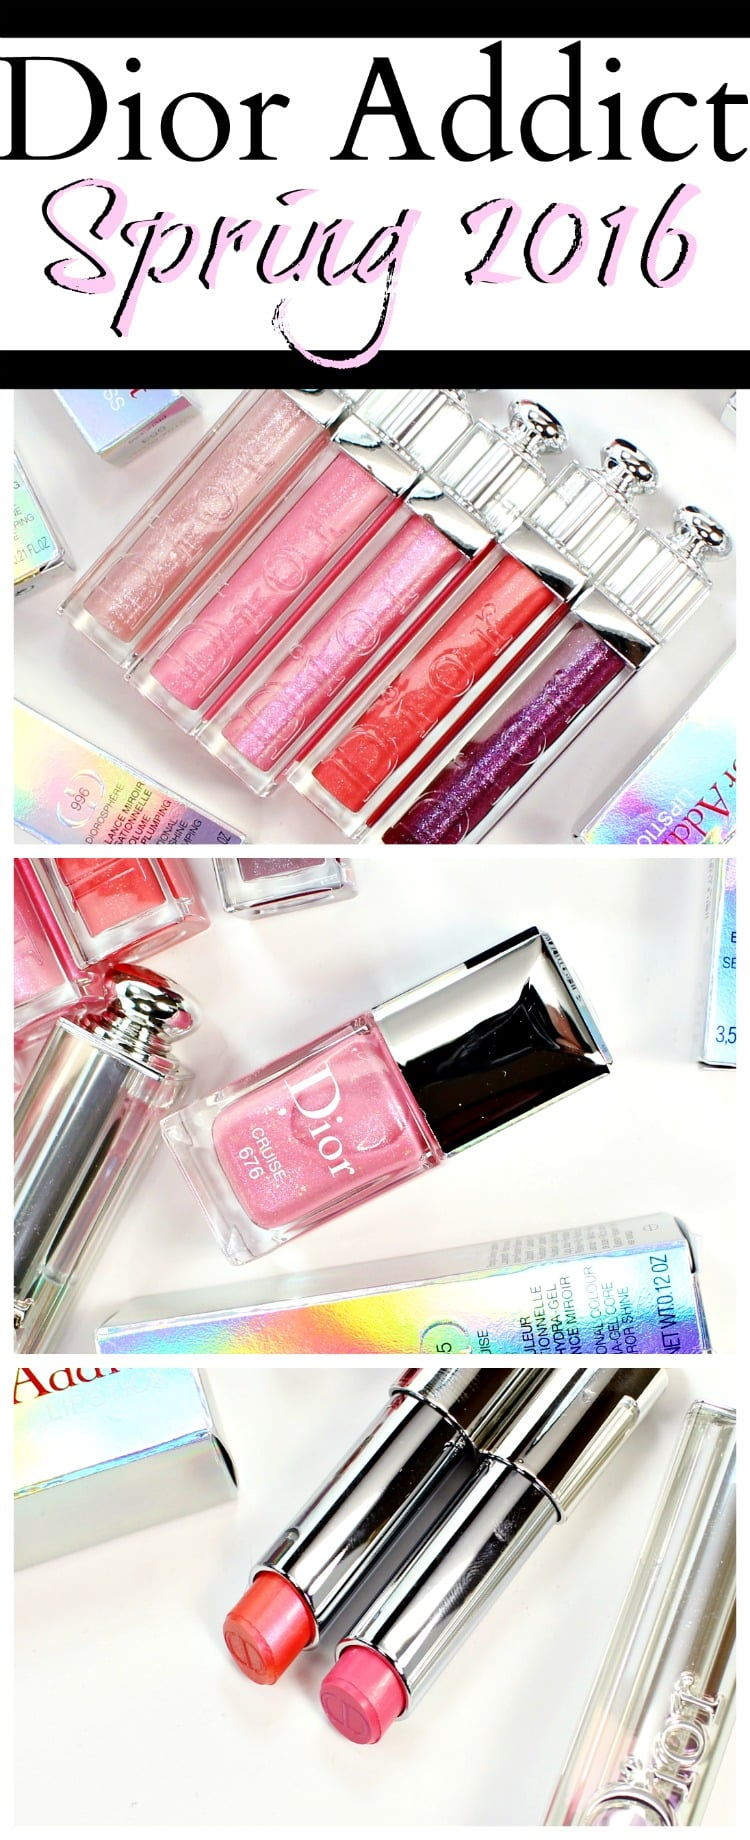 Dior Addict Spring 2016 swatches review